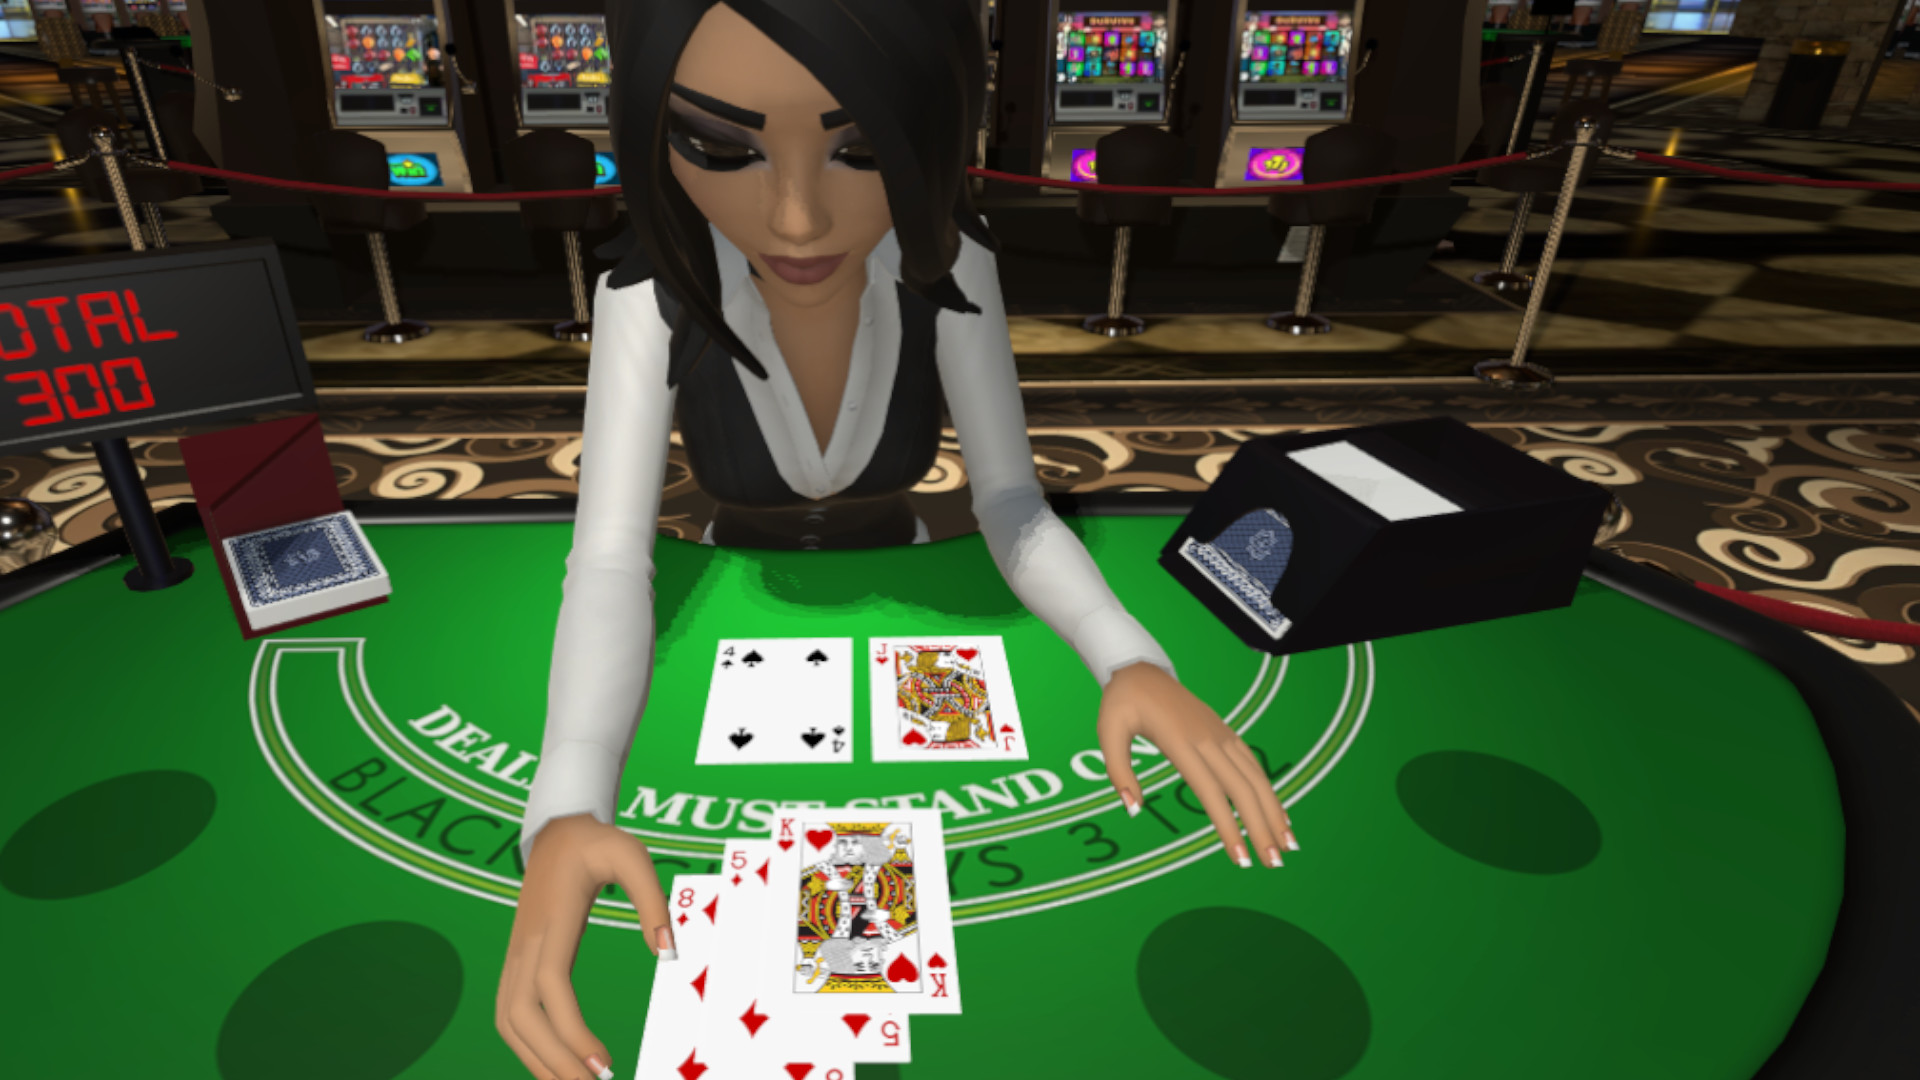 Virtual blackjack table - Blackjack Bailey Vr Is A Casual Casino Blackjack Game You Play In Virtual Reality Against A Cute And Charismatic Dealer That Goes By The Name Of Bailey